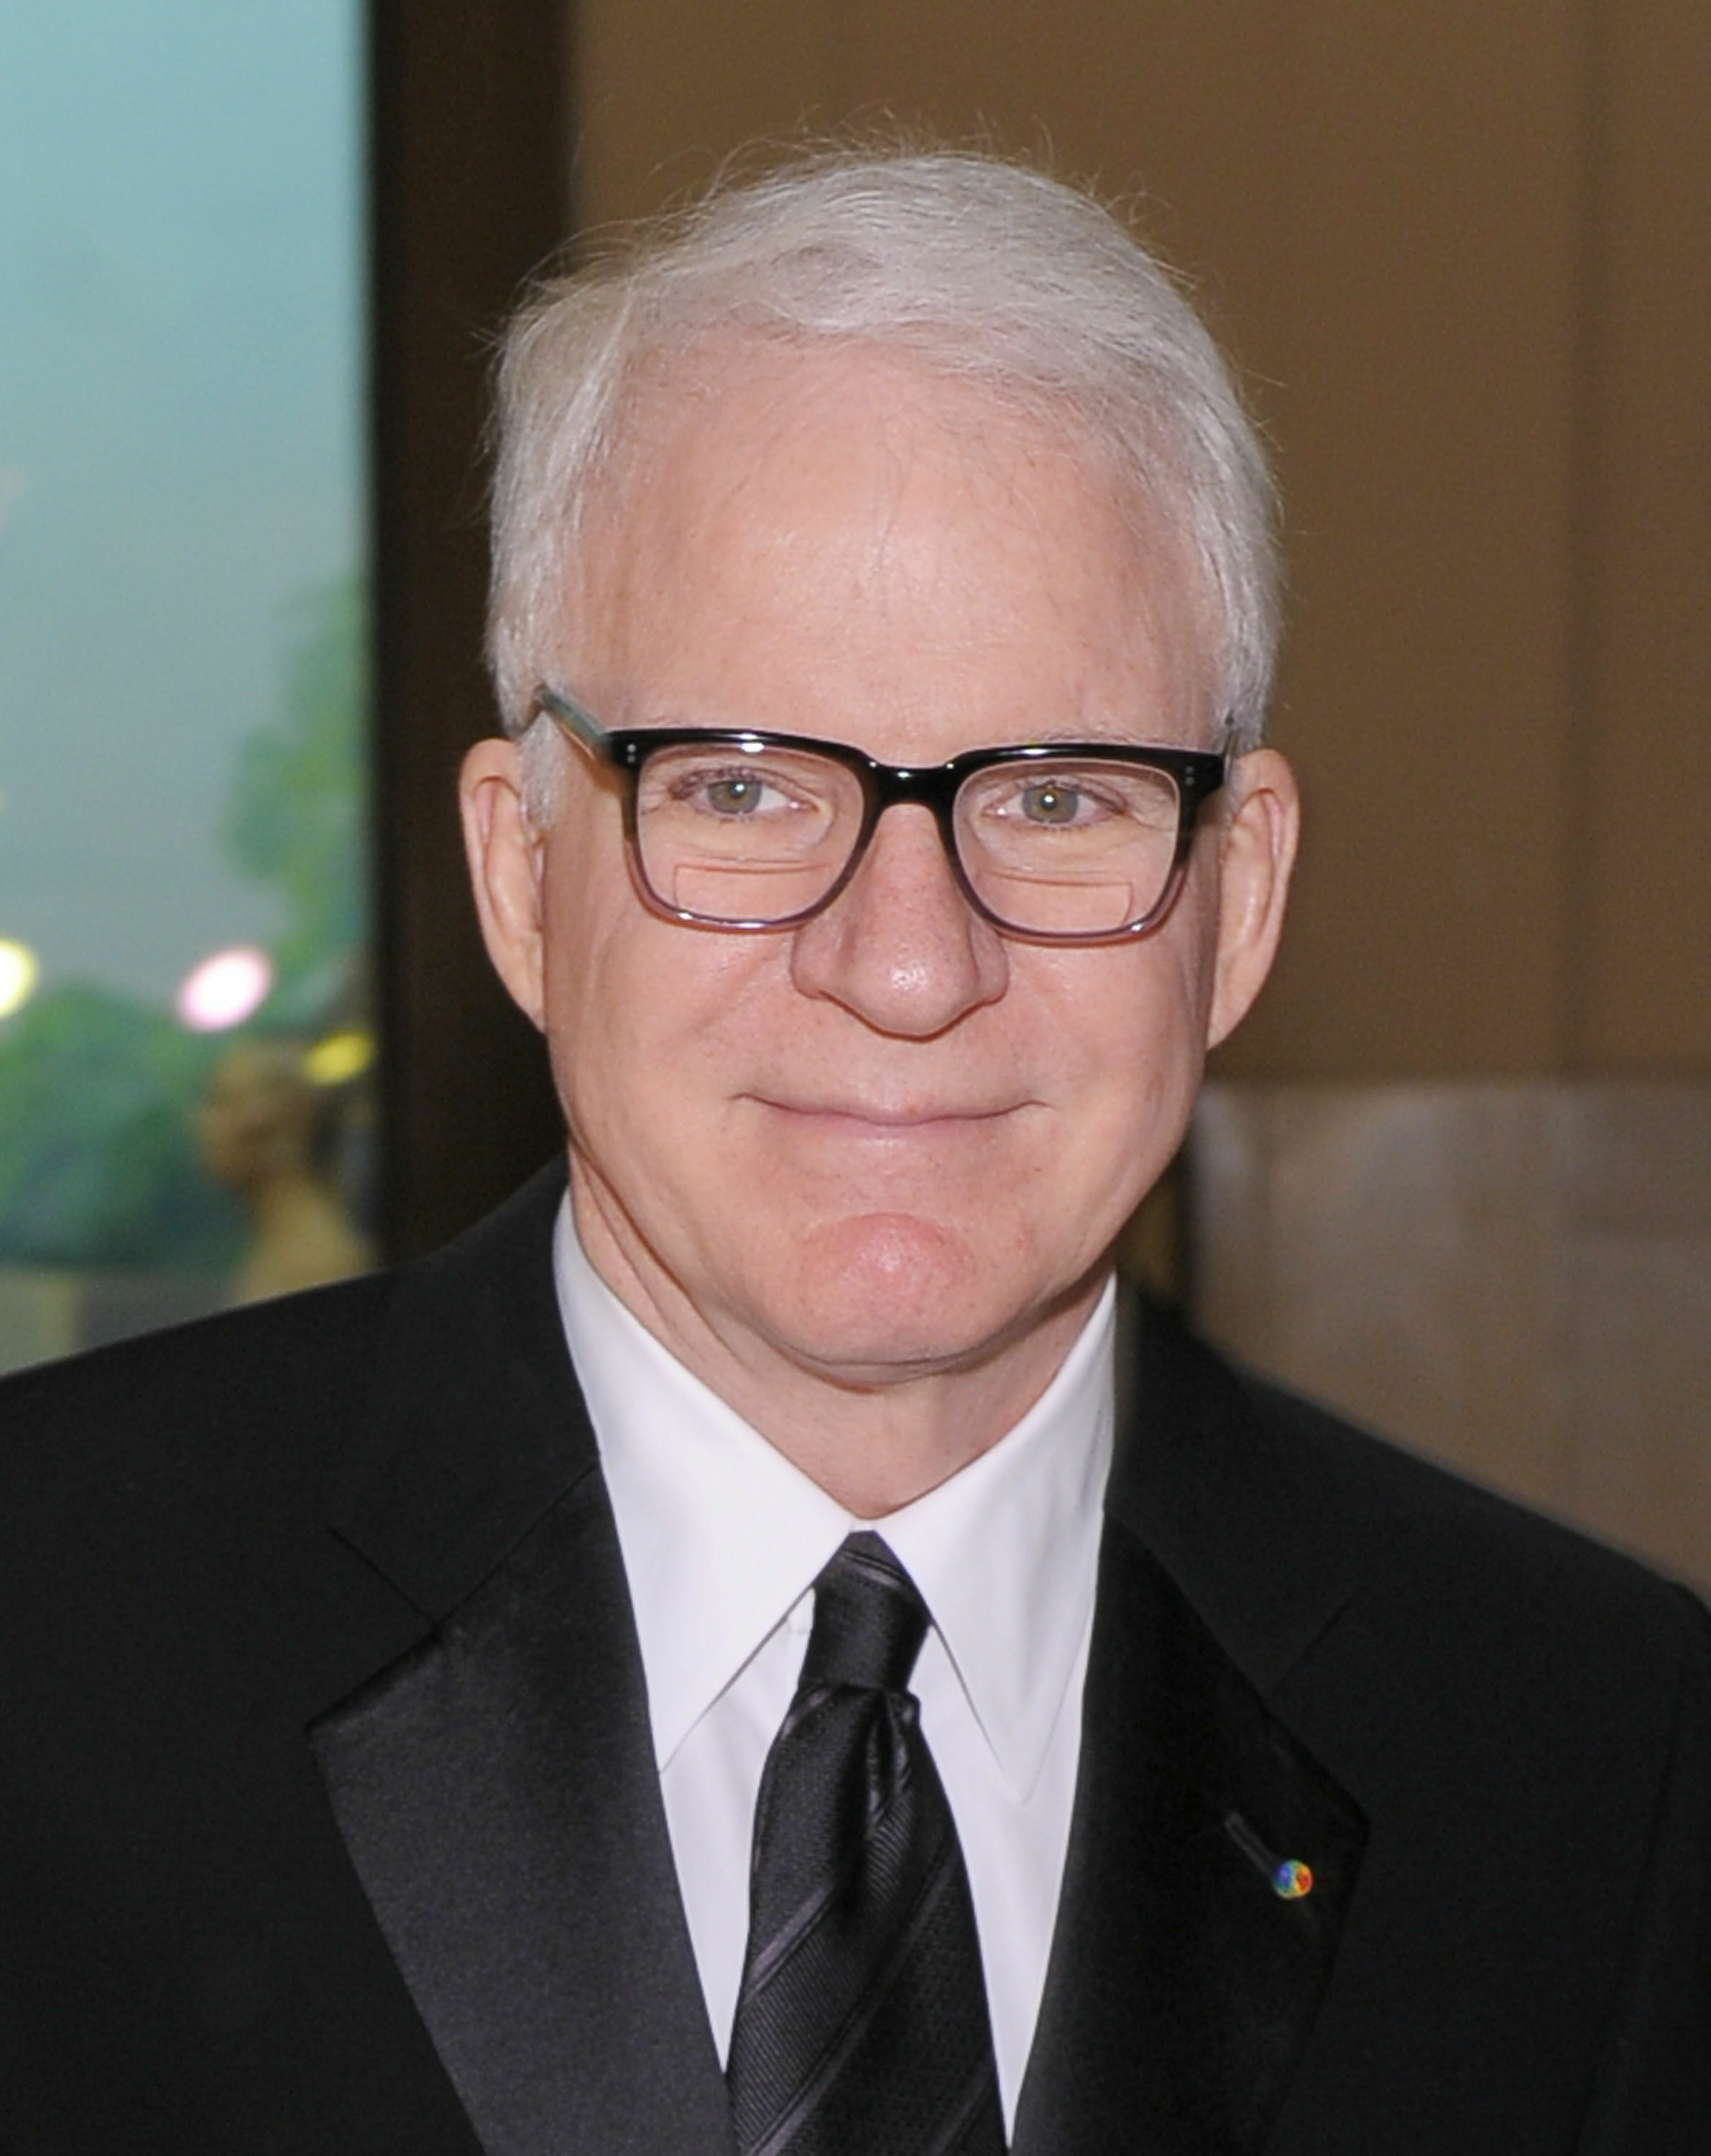 steve martin young